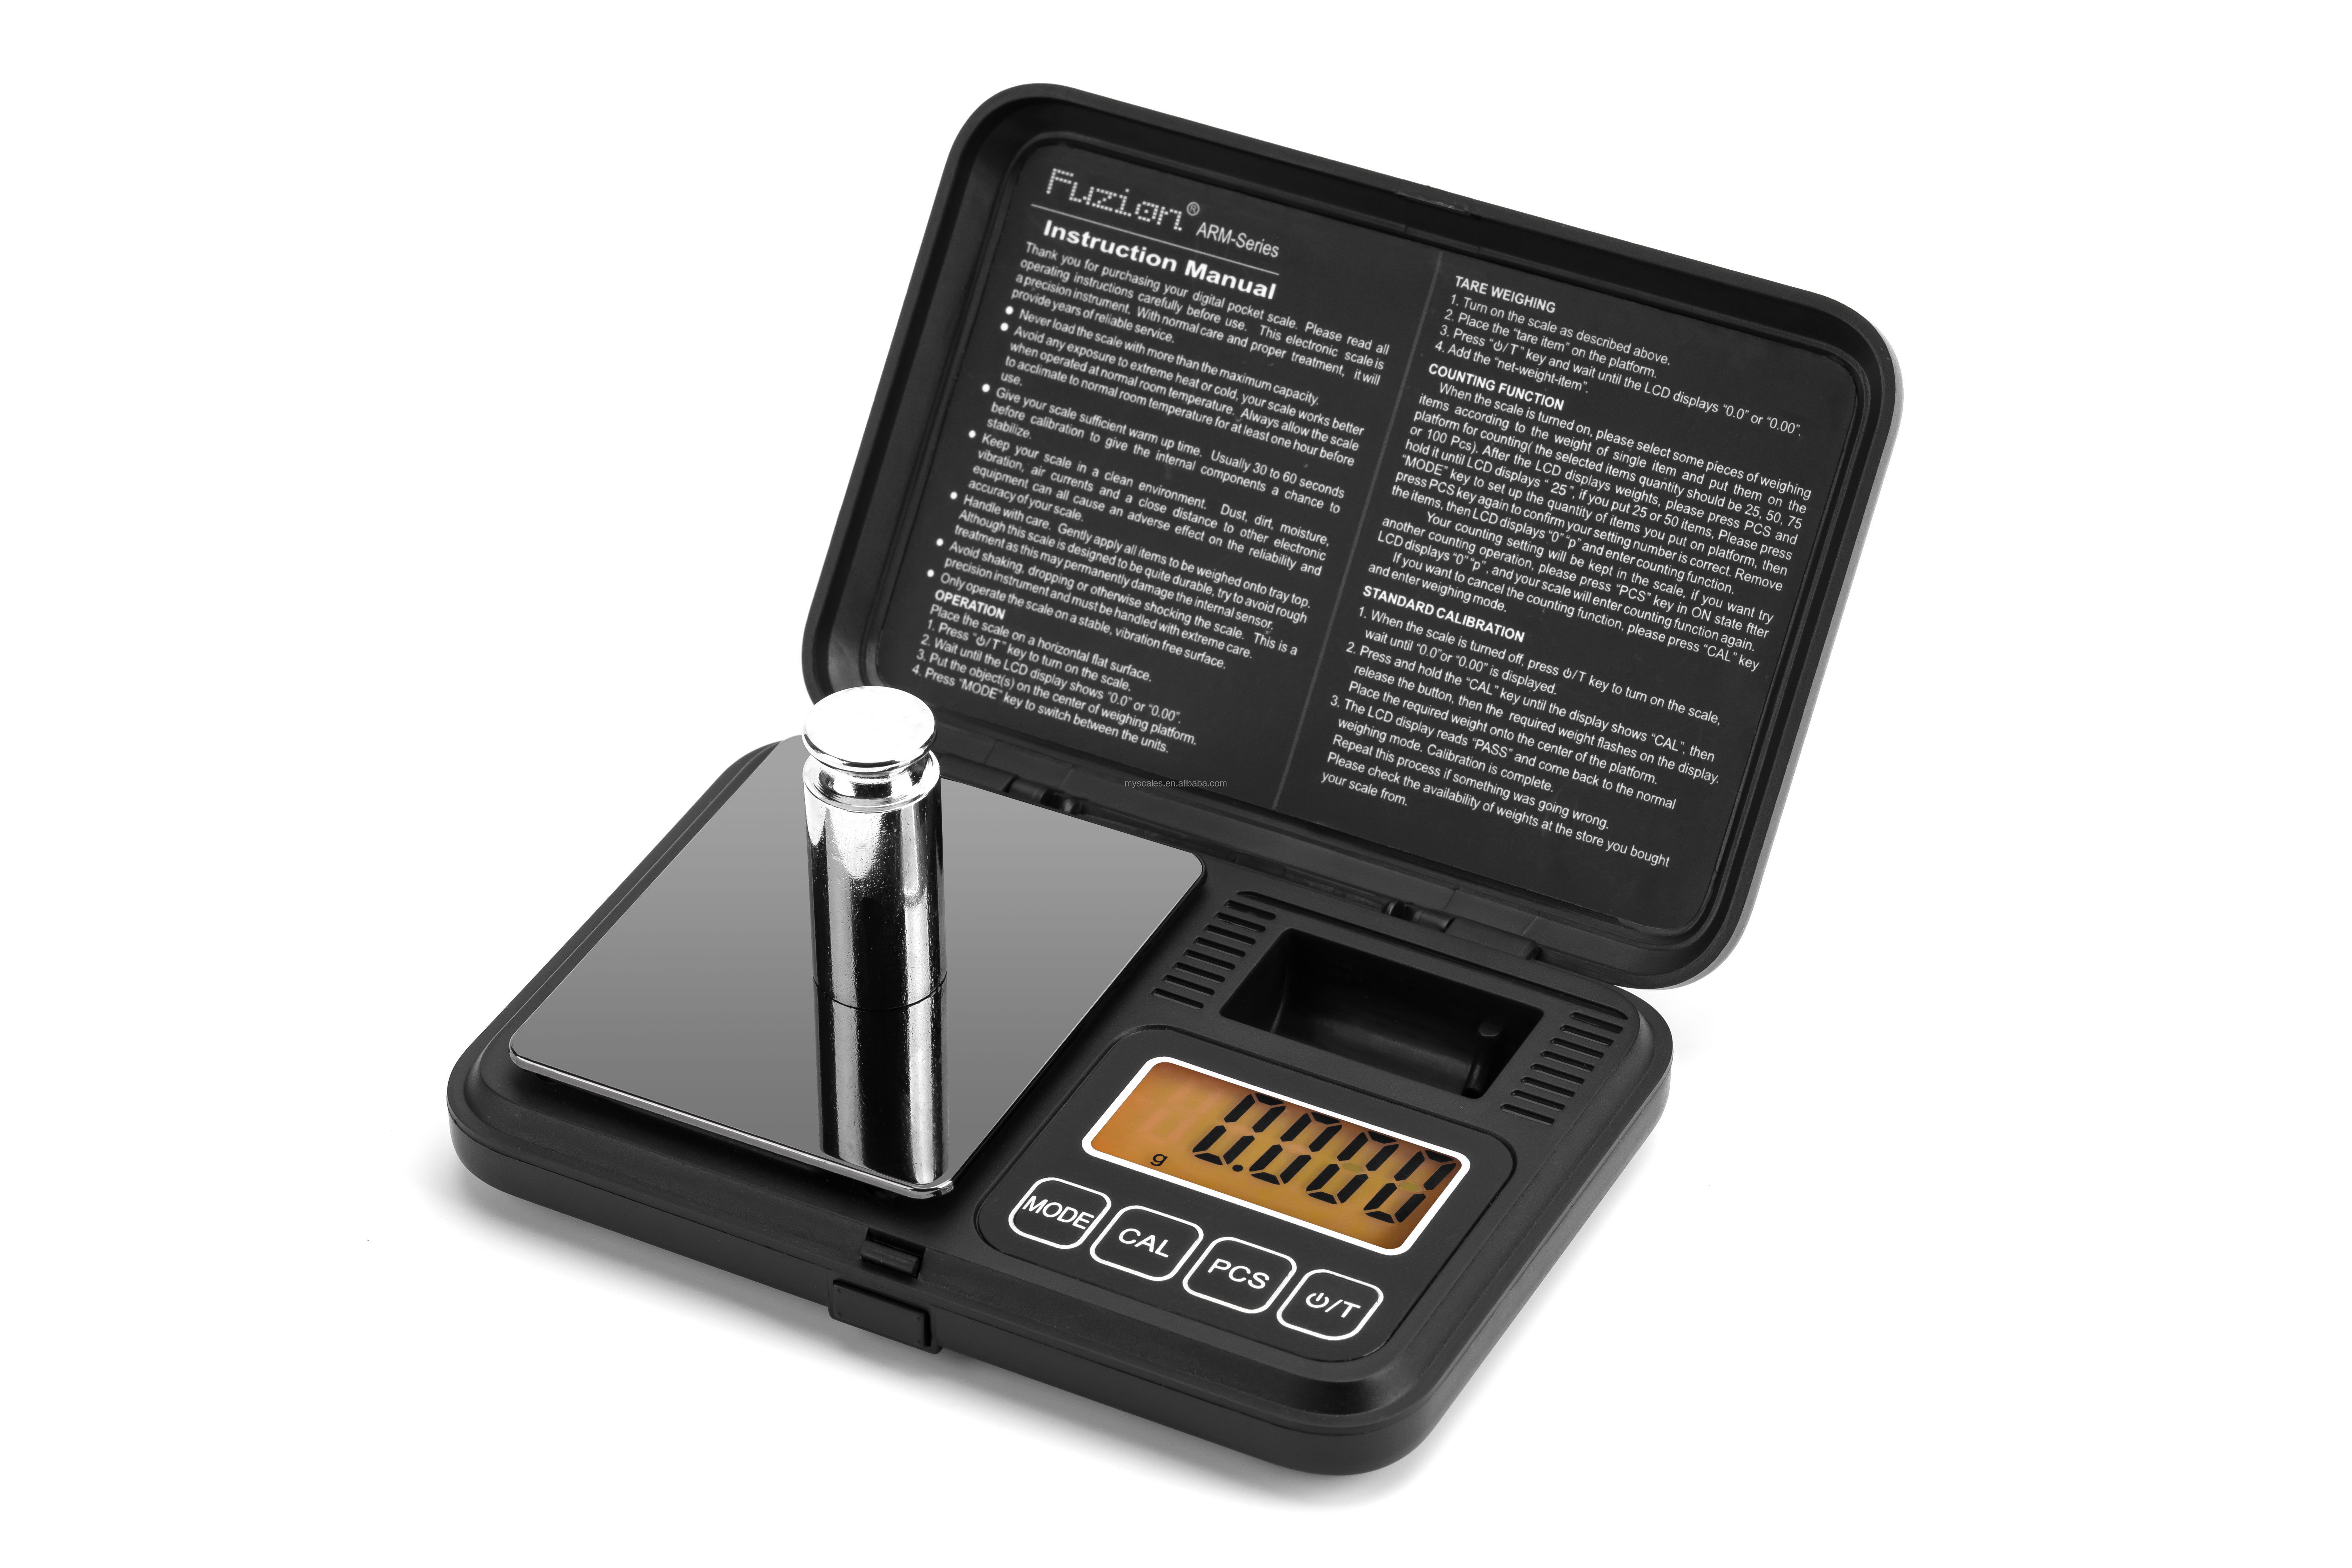 New Digital Scales for Gold Sterling Jewelry 0.01 Balance Weight Electronic Scale Min Highly Accurate Premium Stainless Steel